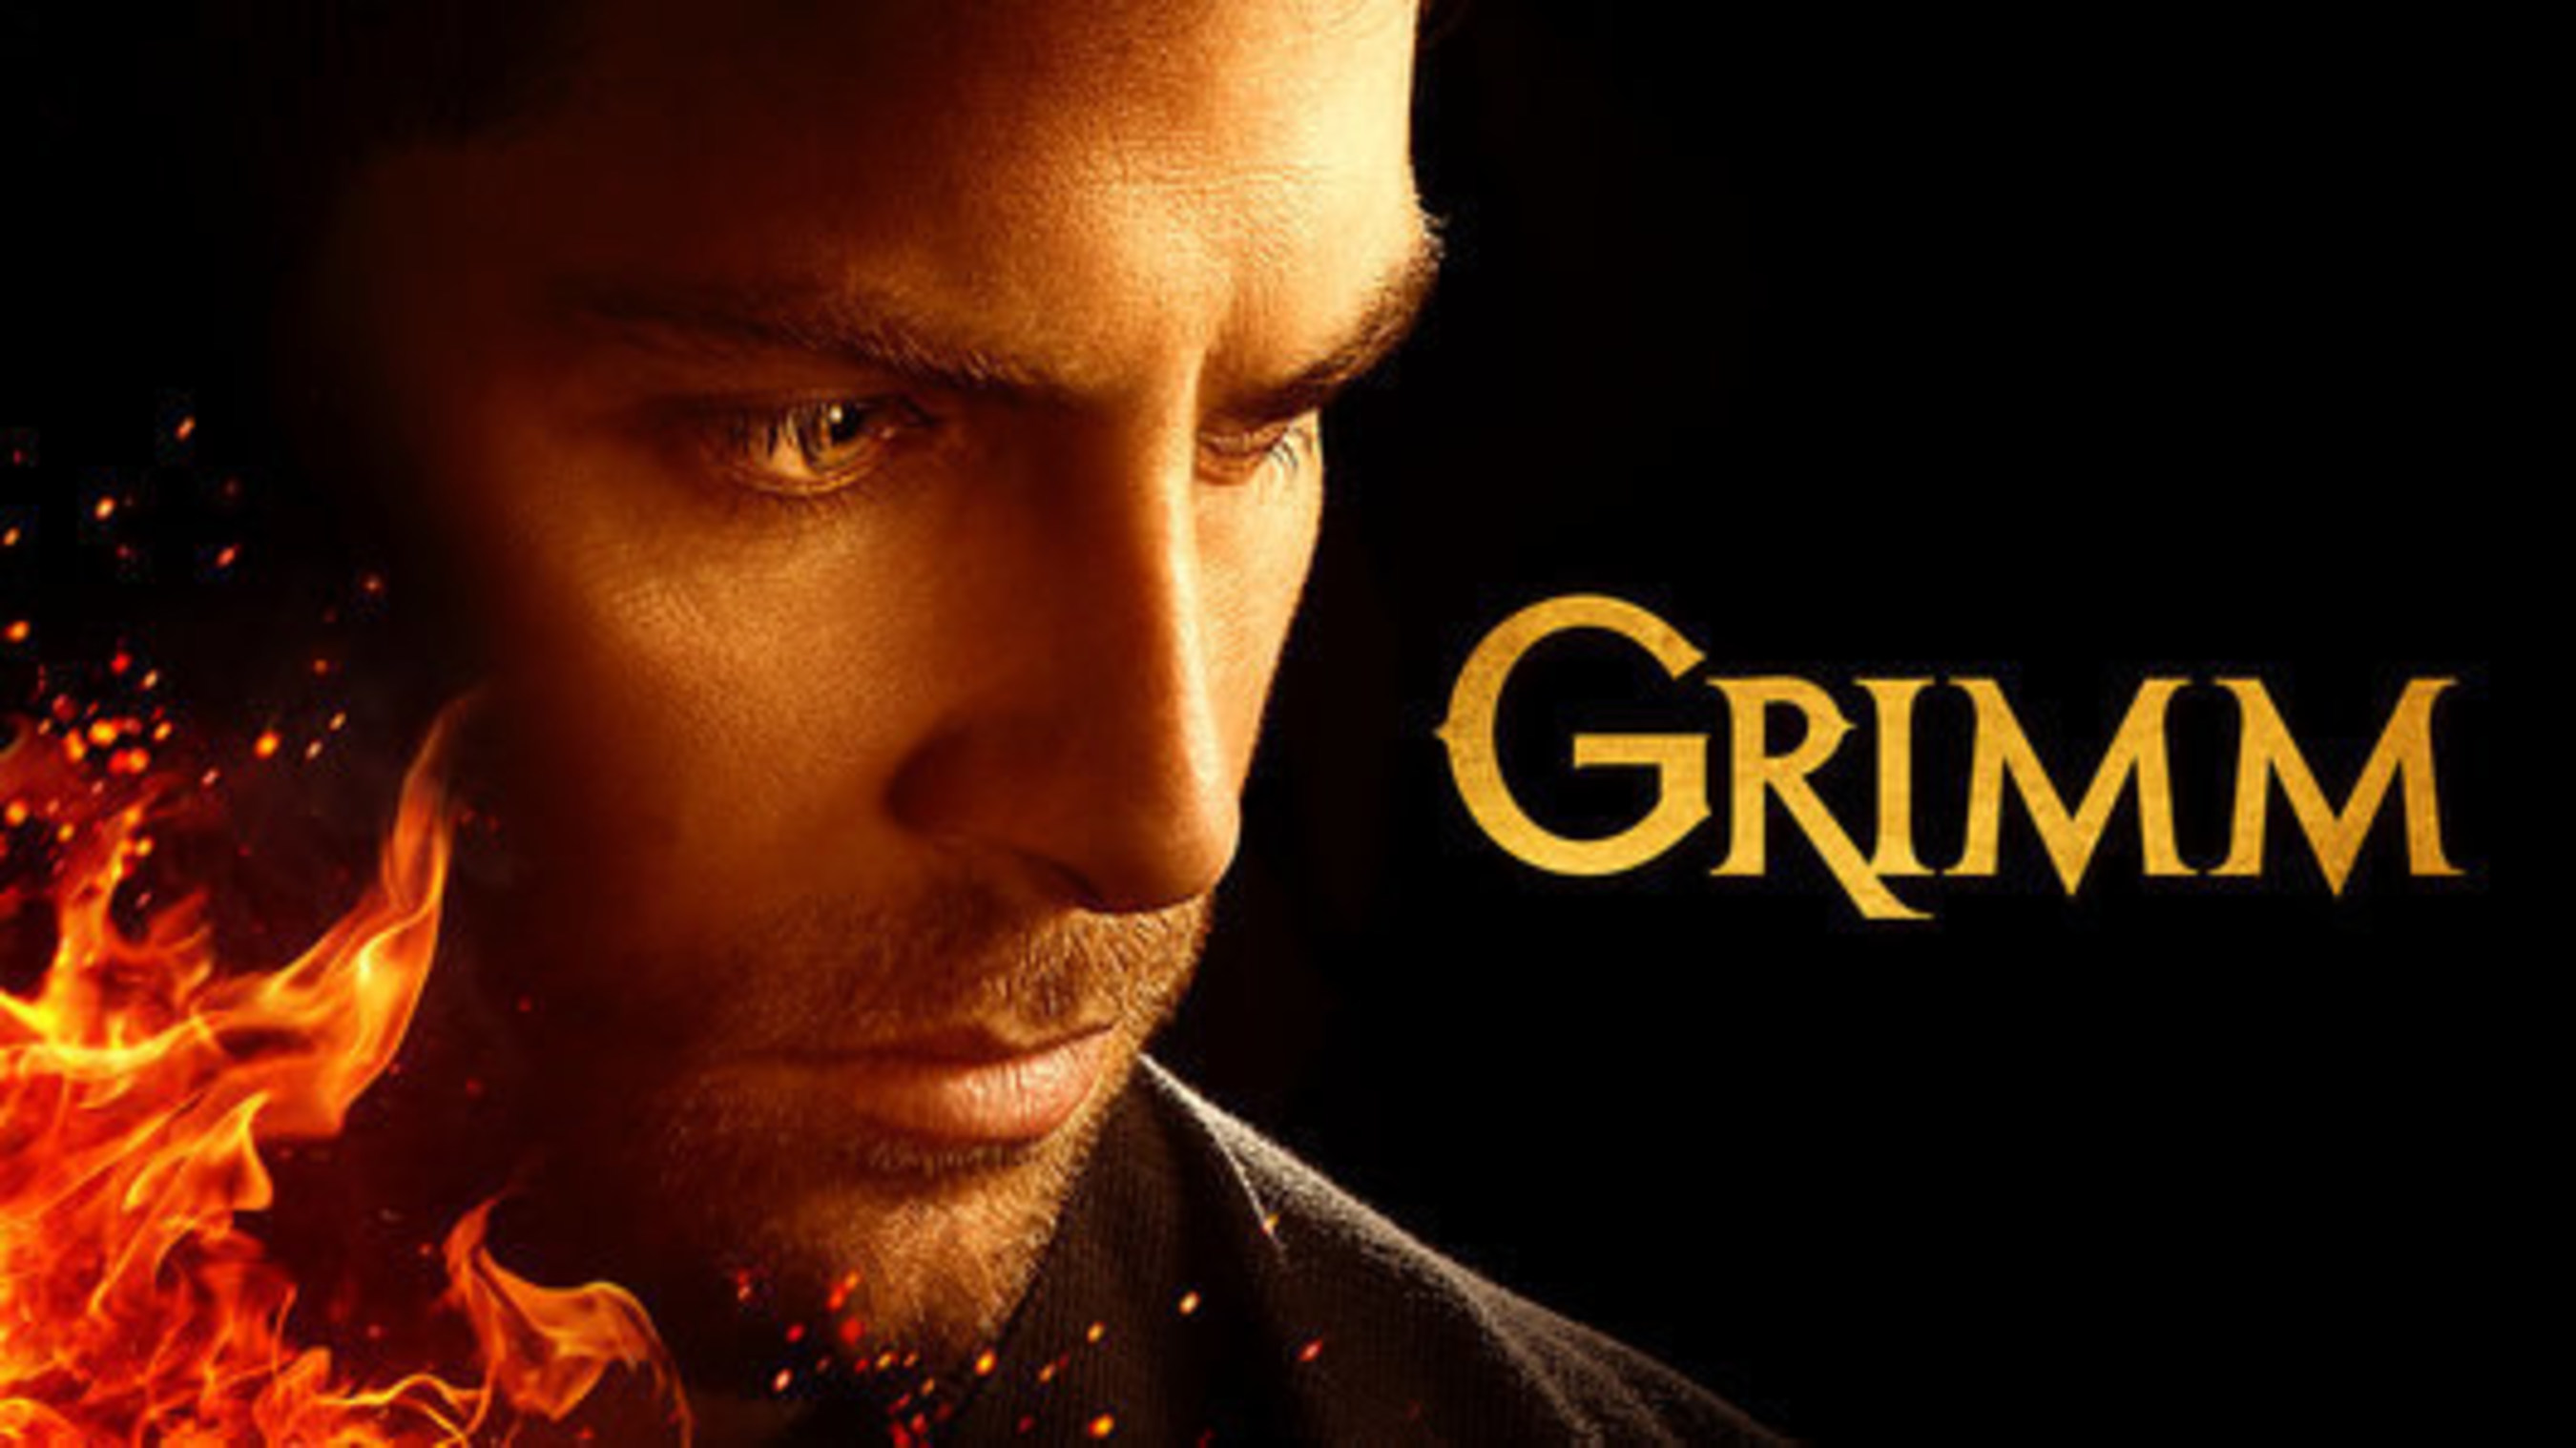 Actress STEPHANIE FODOR Has a Harrowing Encounter on All-New 'GRIMM' Episode Airing on February 5,